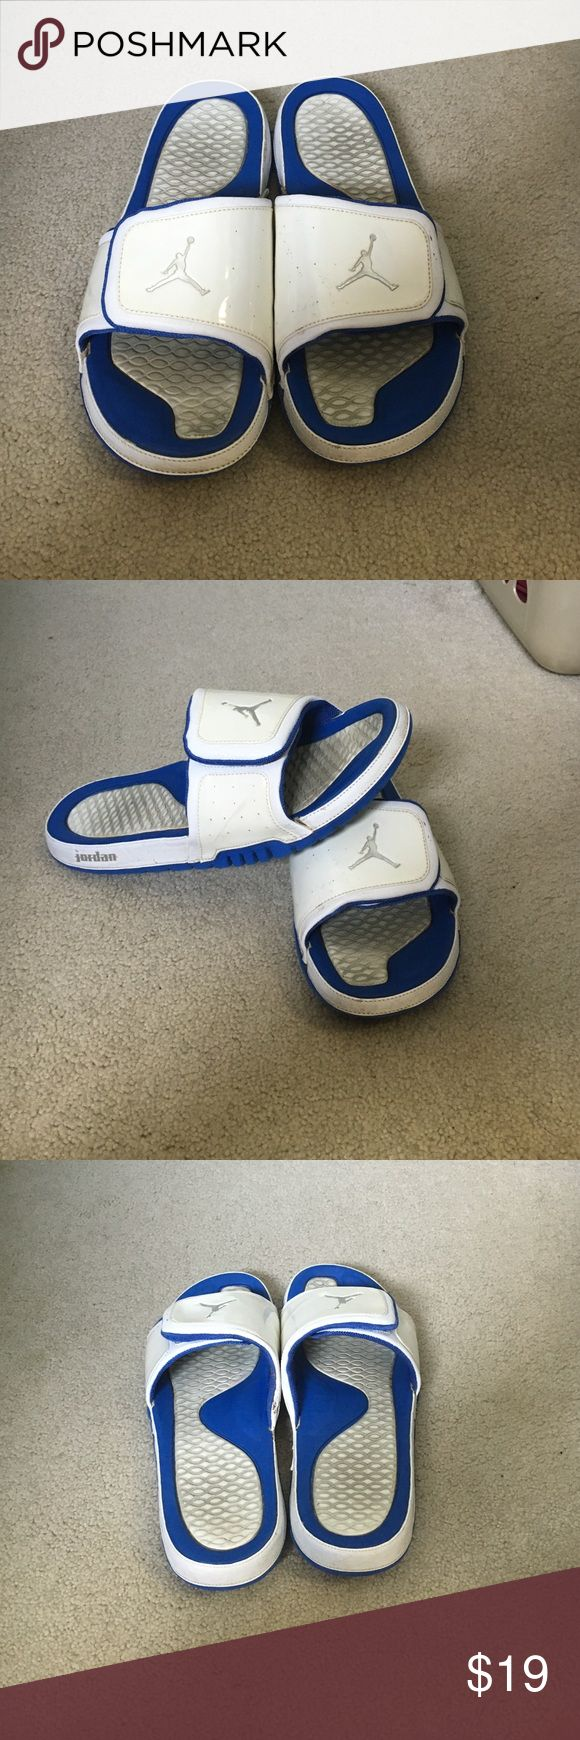 Air Jordan sandals Blue and white Jordan sandals. Good for relaxing on a sunny day. In good condition. Jordan Shoes Sandals